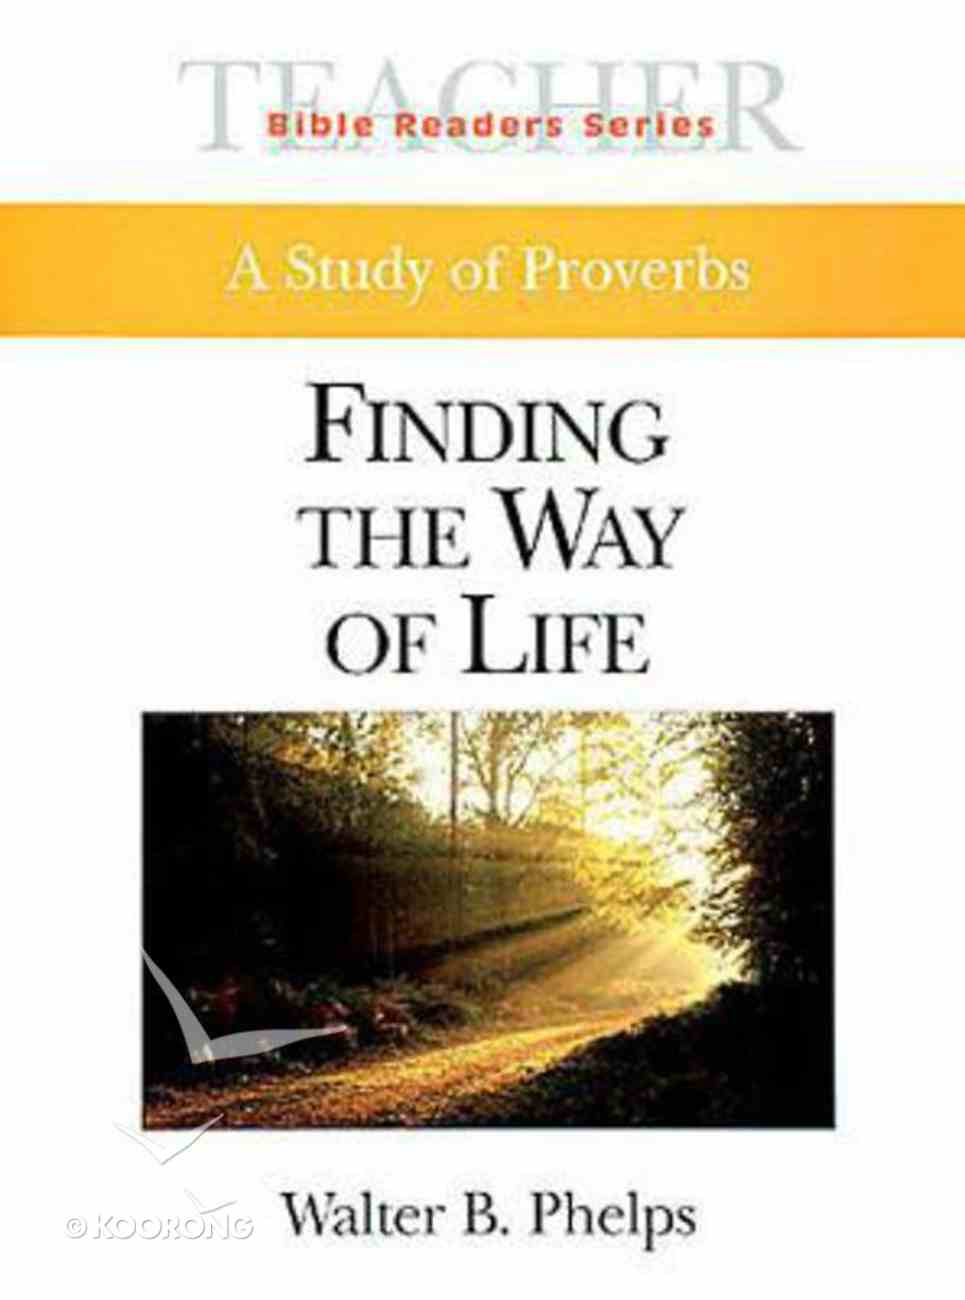 Finding the Way of Life (Teacher's Guide) (Abingdon Bible Reader Series) Paperback